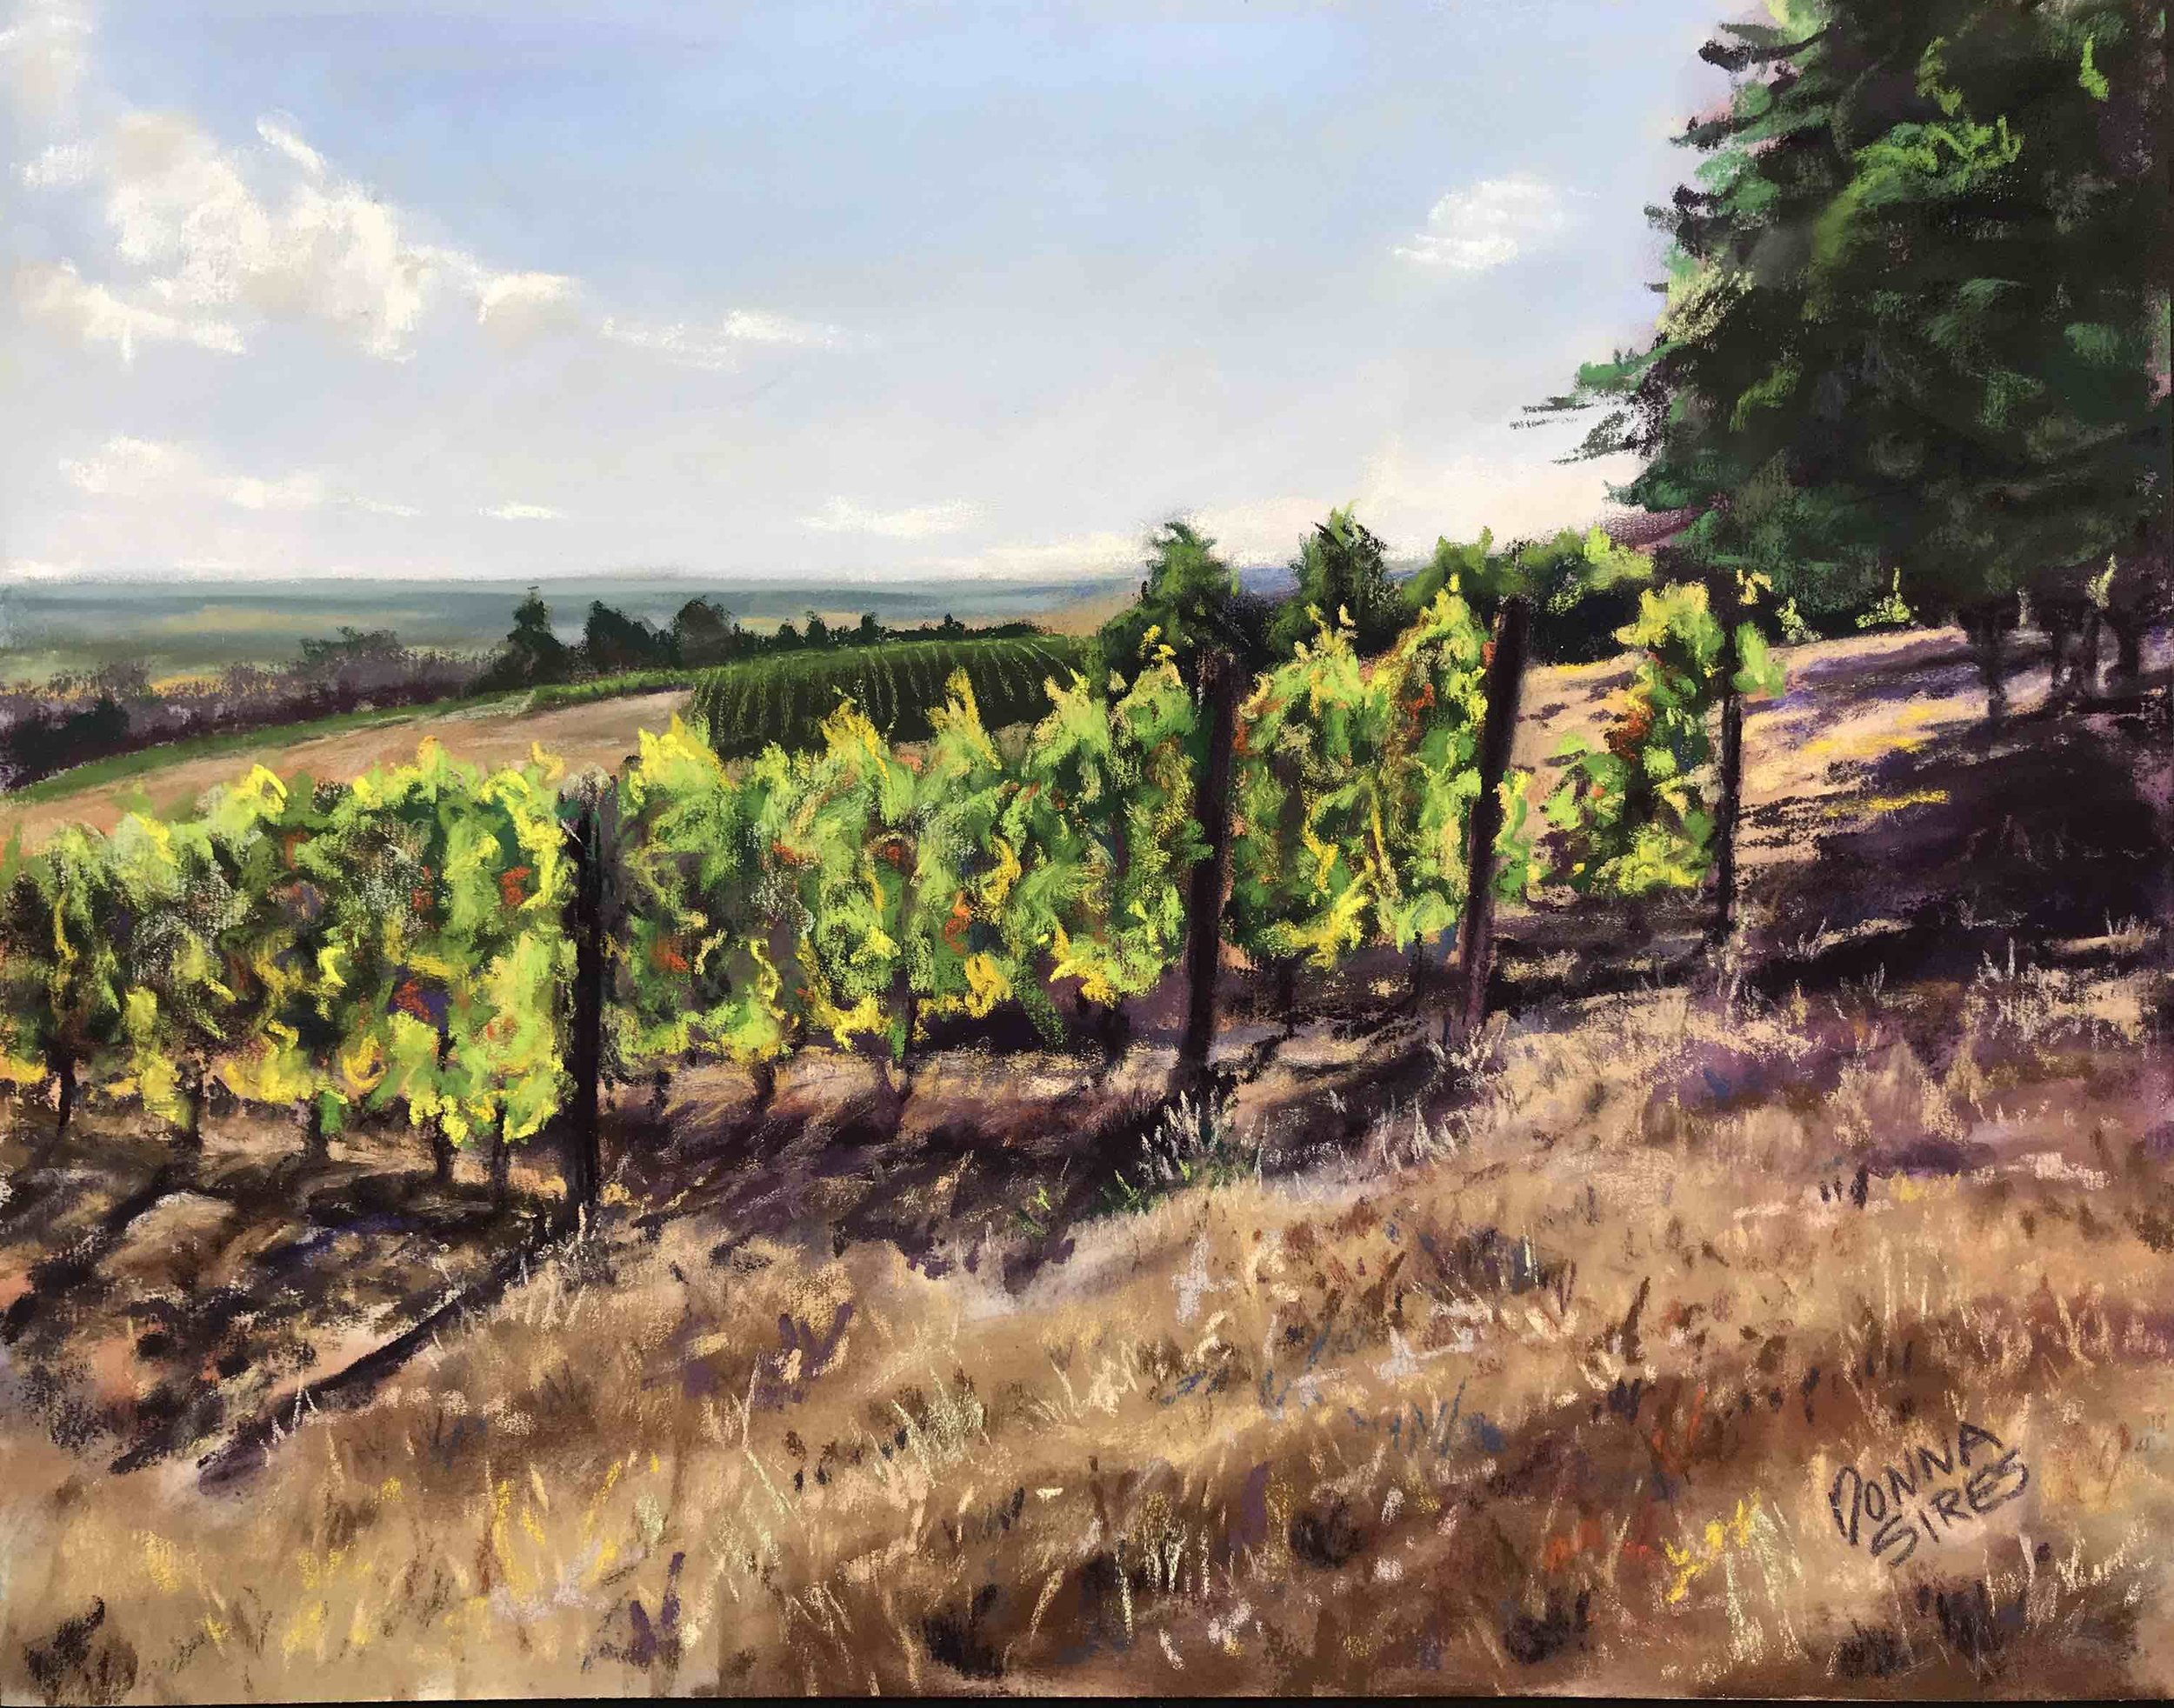 Sires: Dundee Vineyards